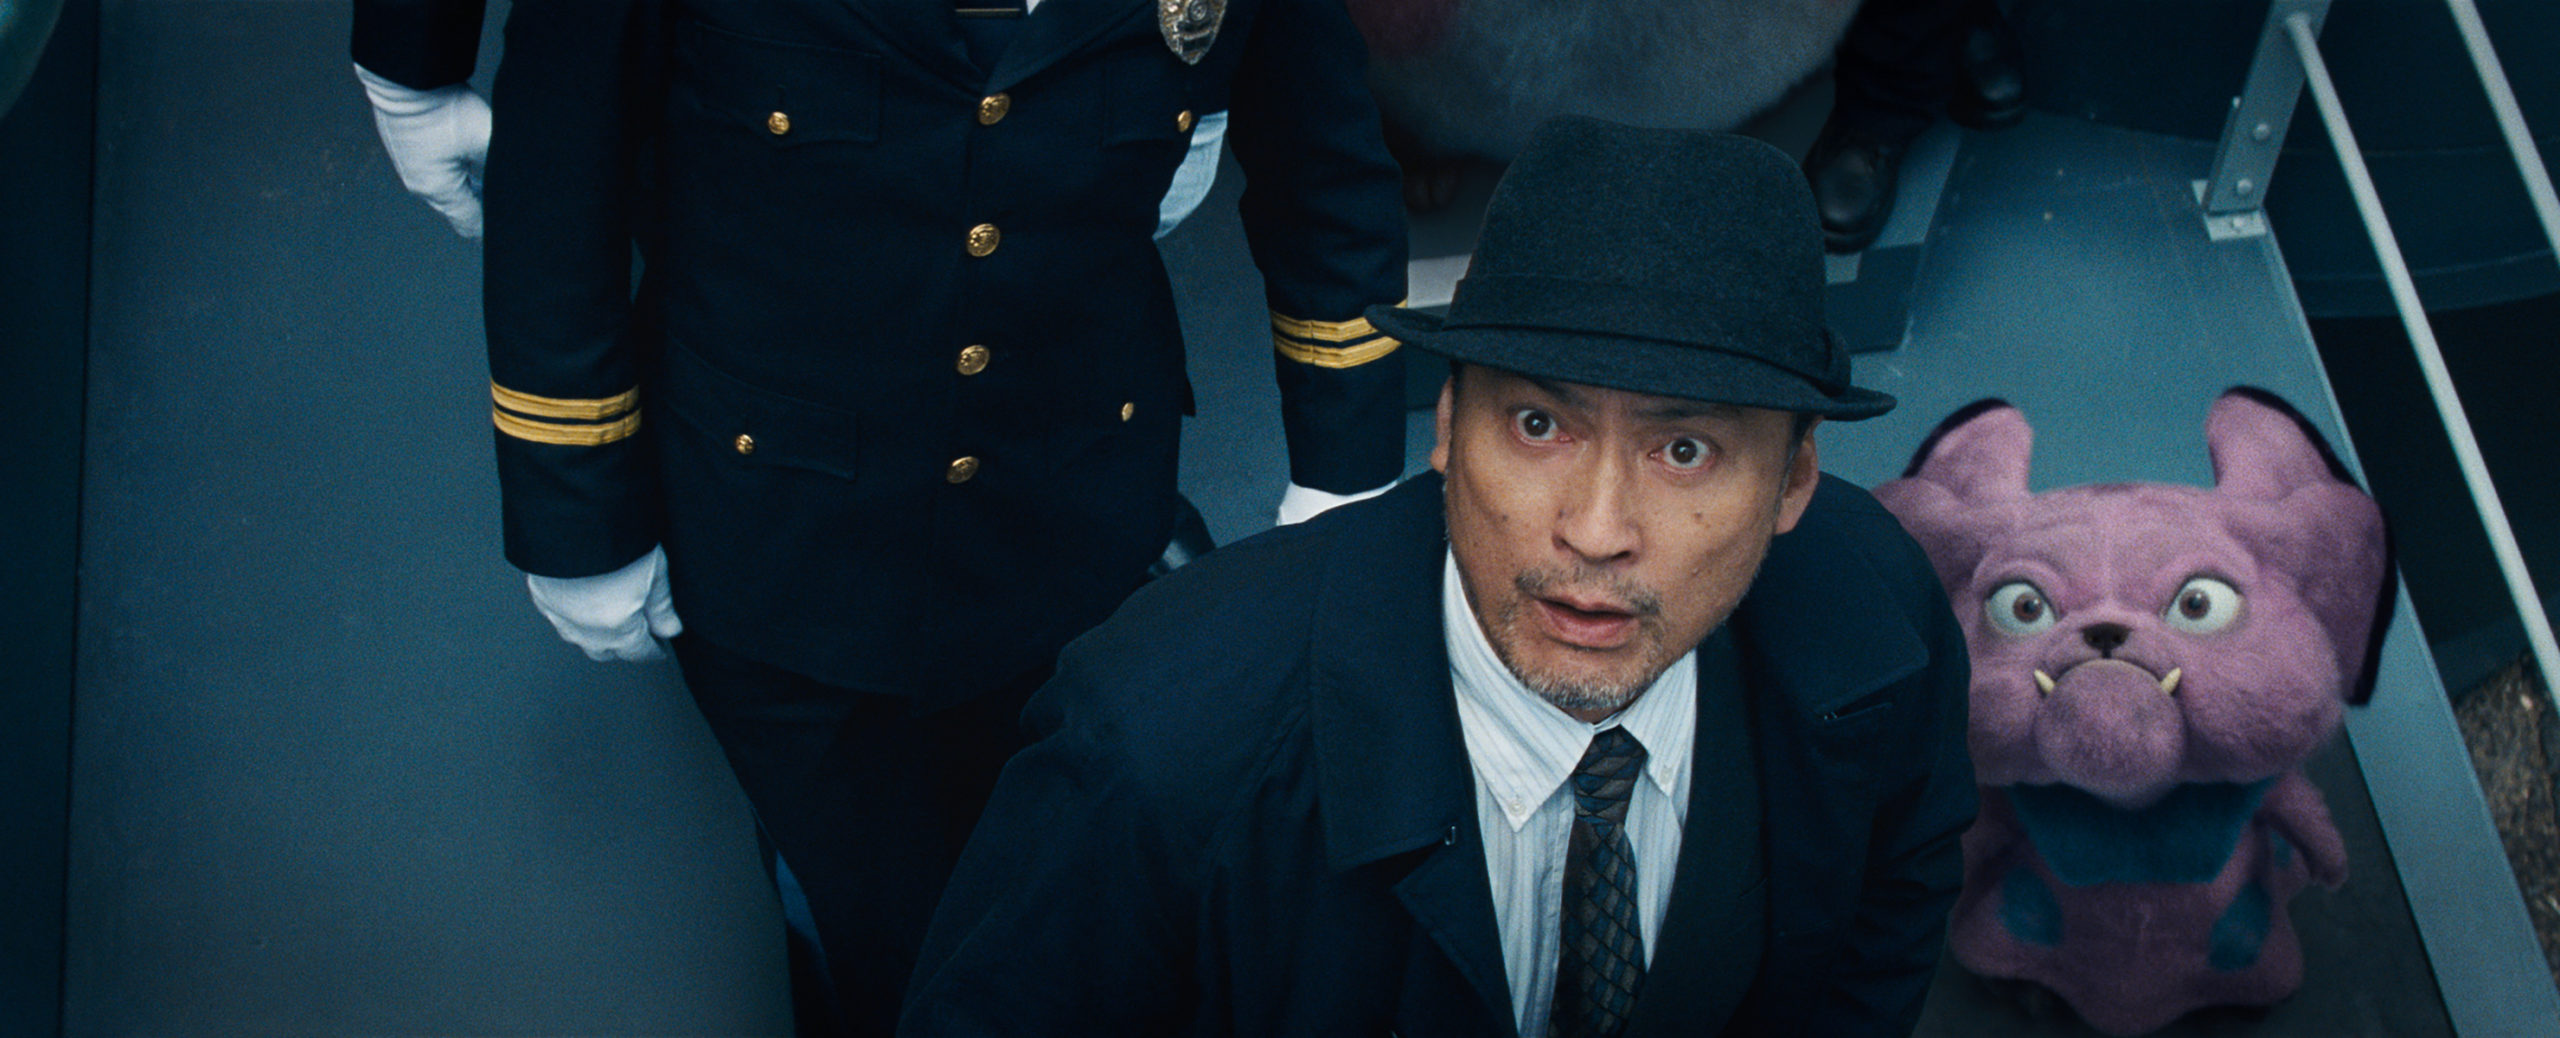 "(L-R) KEN WATANABE as Lieutenant Hide Yoshida and Snubbull in Legendary Pictures' and Warner Bros. Pictures' comedy adventure ""POKÉMON DETECTIVE PIKACHU,"" a Warner Bros. Pictures release."